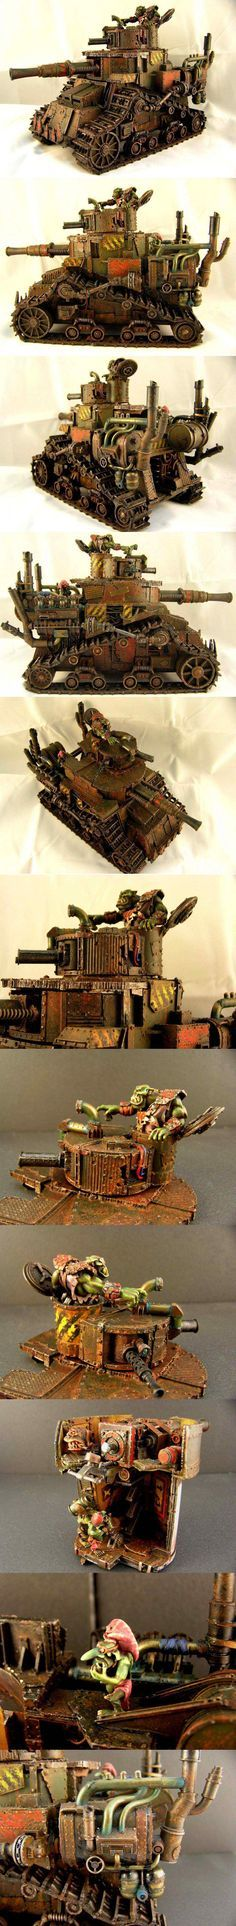 CoolMiniOrNot - ORK KIL KRUSHA TANK by Roman 2.0